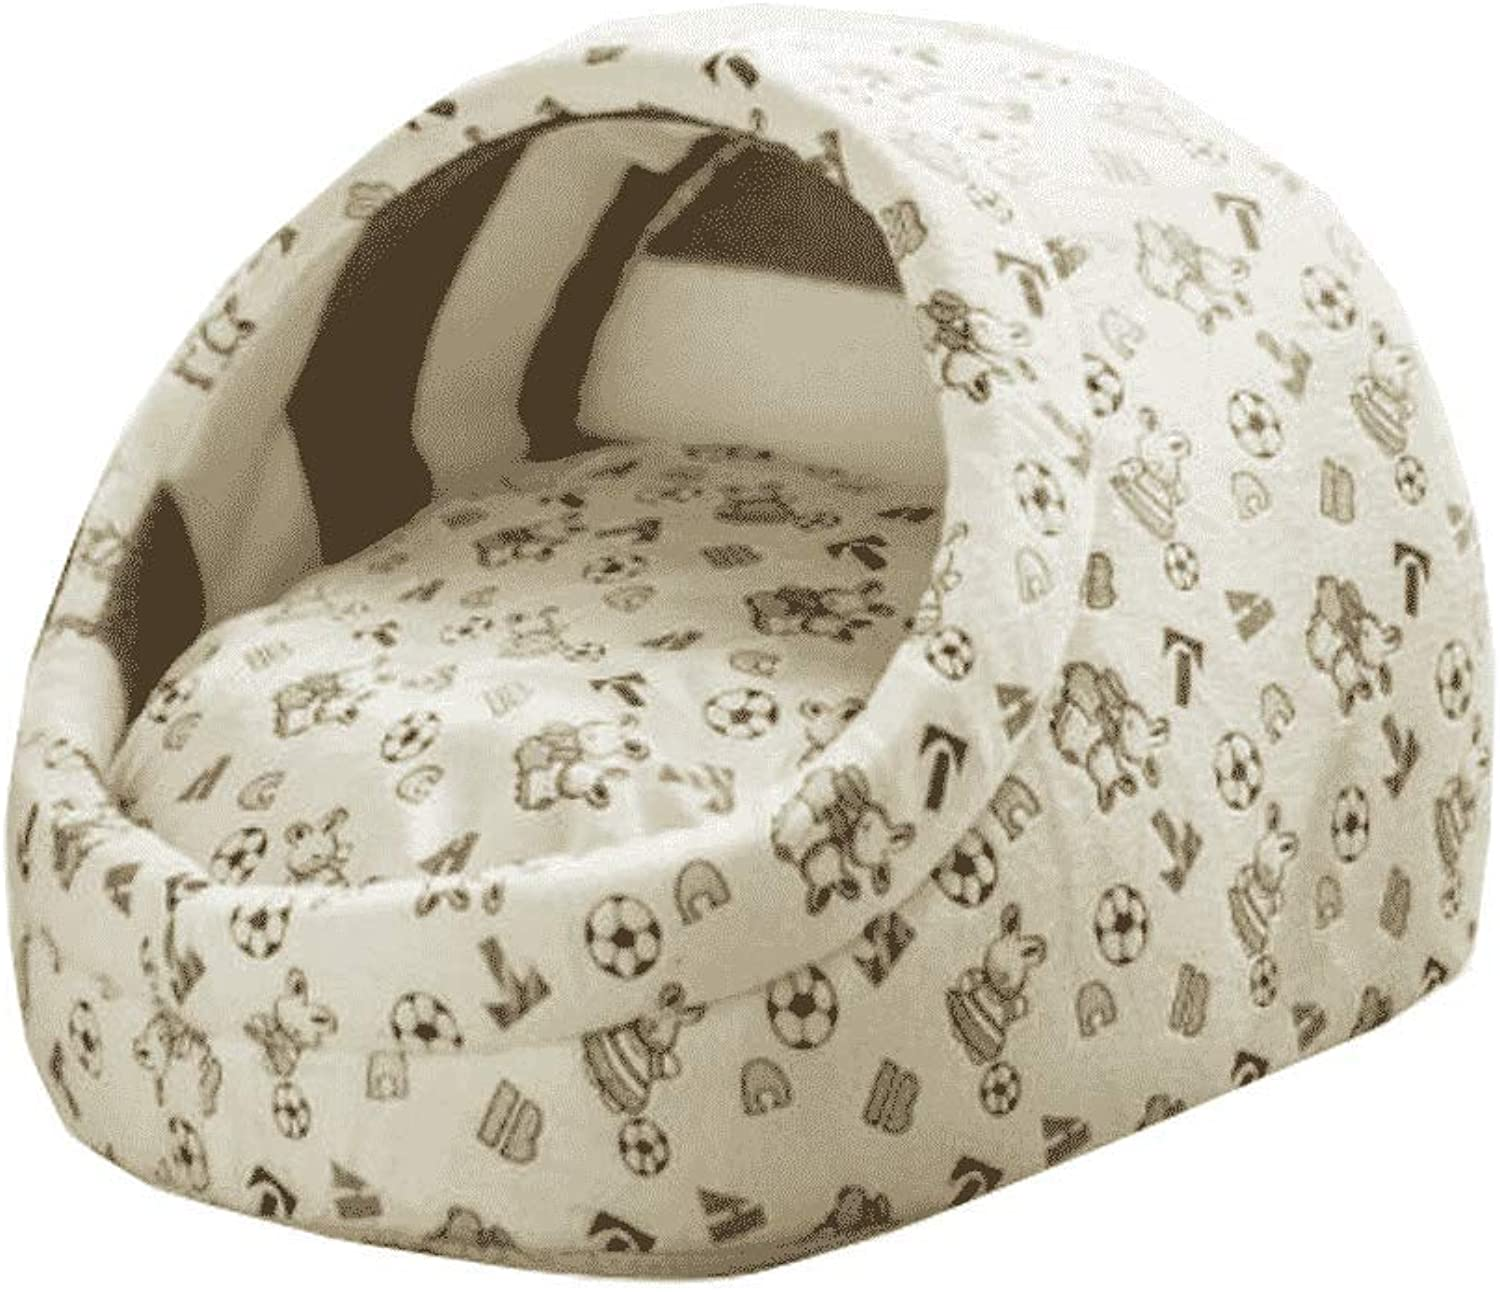 Cat Litter Warm Small And Medium Dogs Four Seasons Universal Cat Dog Bed Teddy Pet Supplies WHLONG (Size   L)